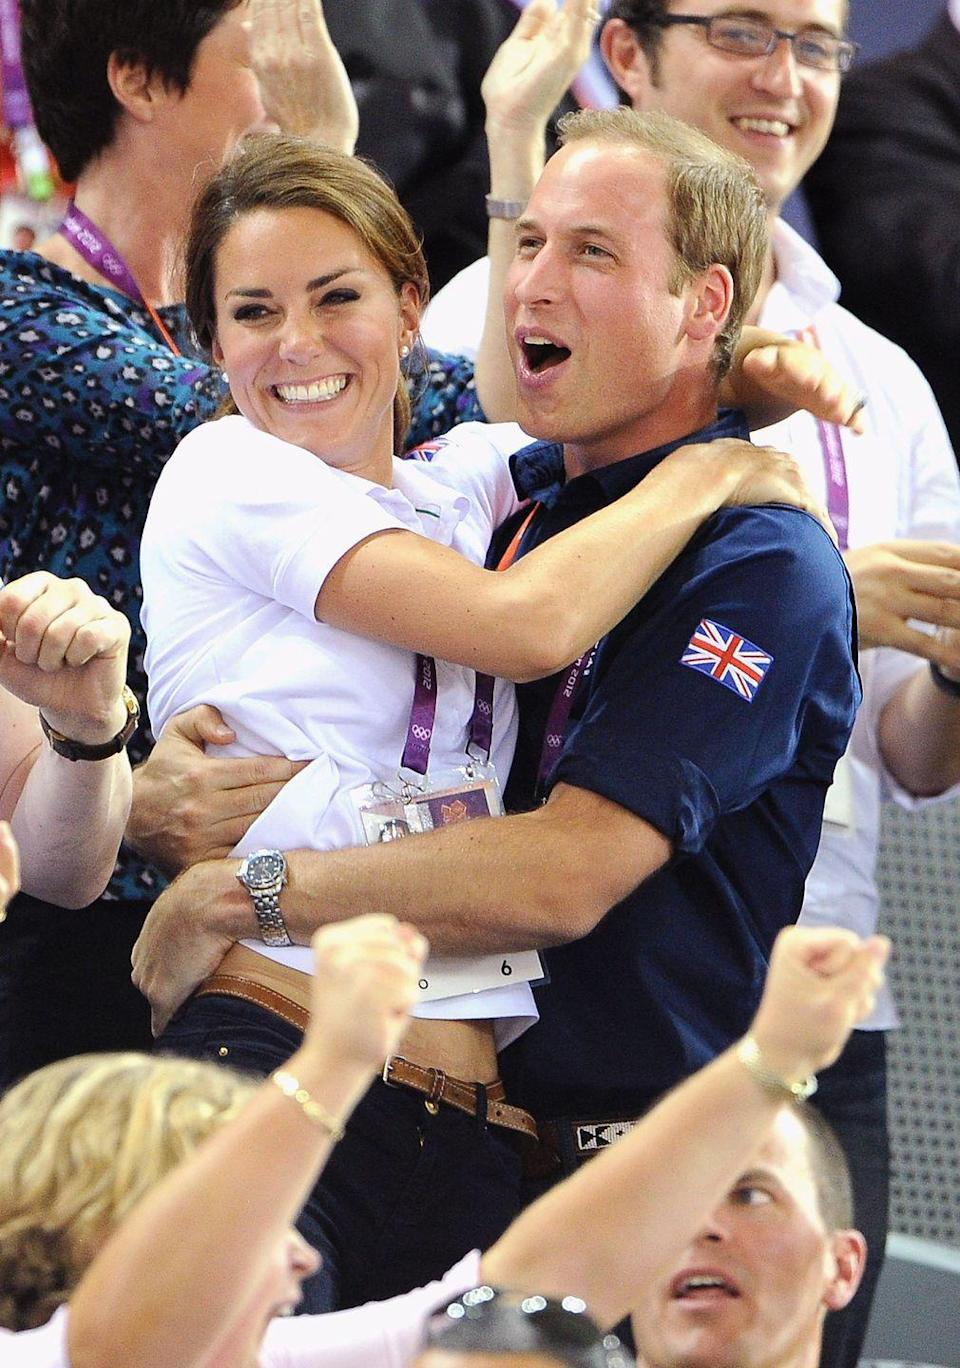 <p>In an unusual display of public affection, the Duke and Duchess of Cambridge embraced each other while celebrating the 2012 Olympic Games in London.</p>